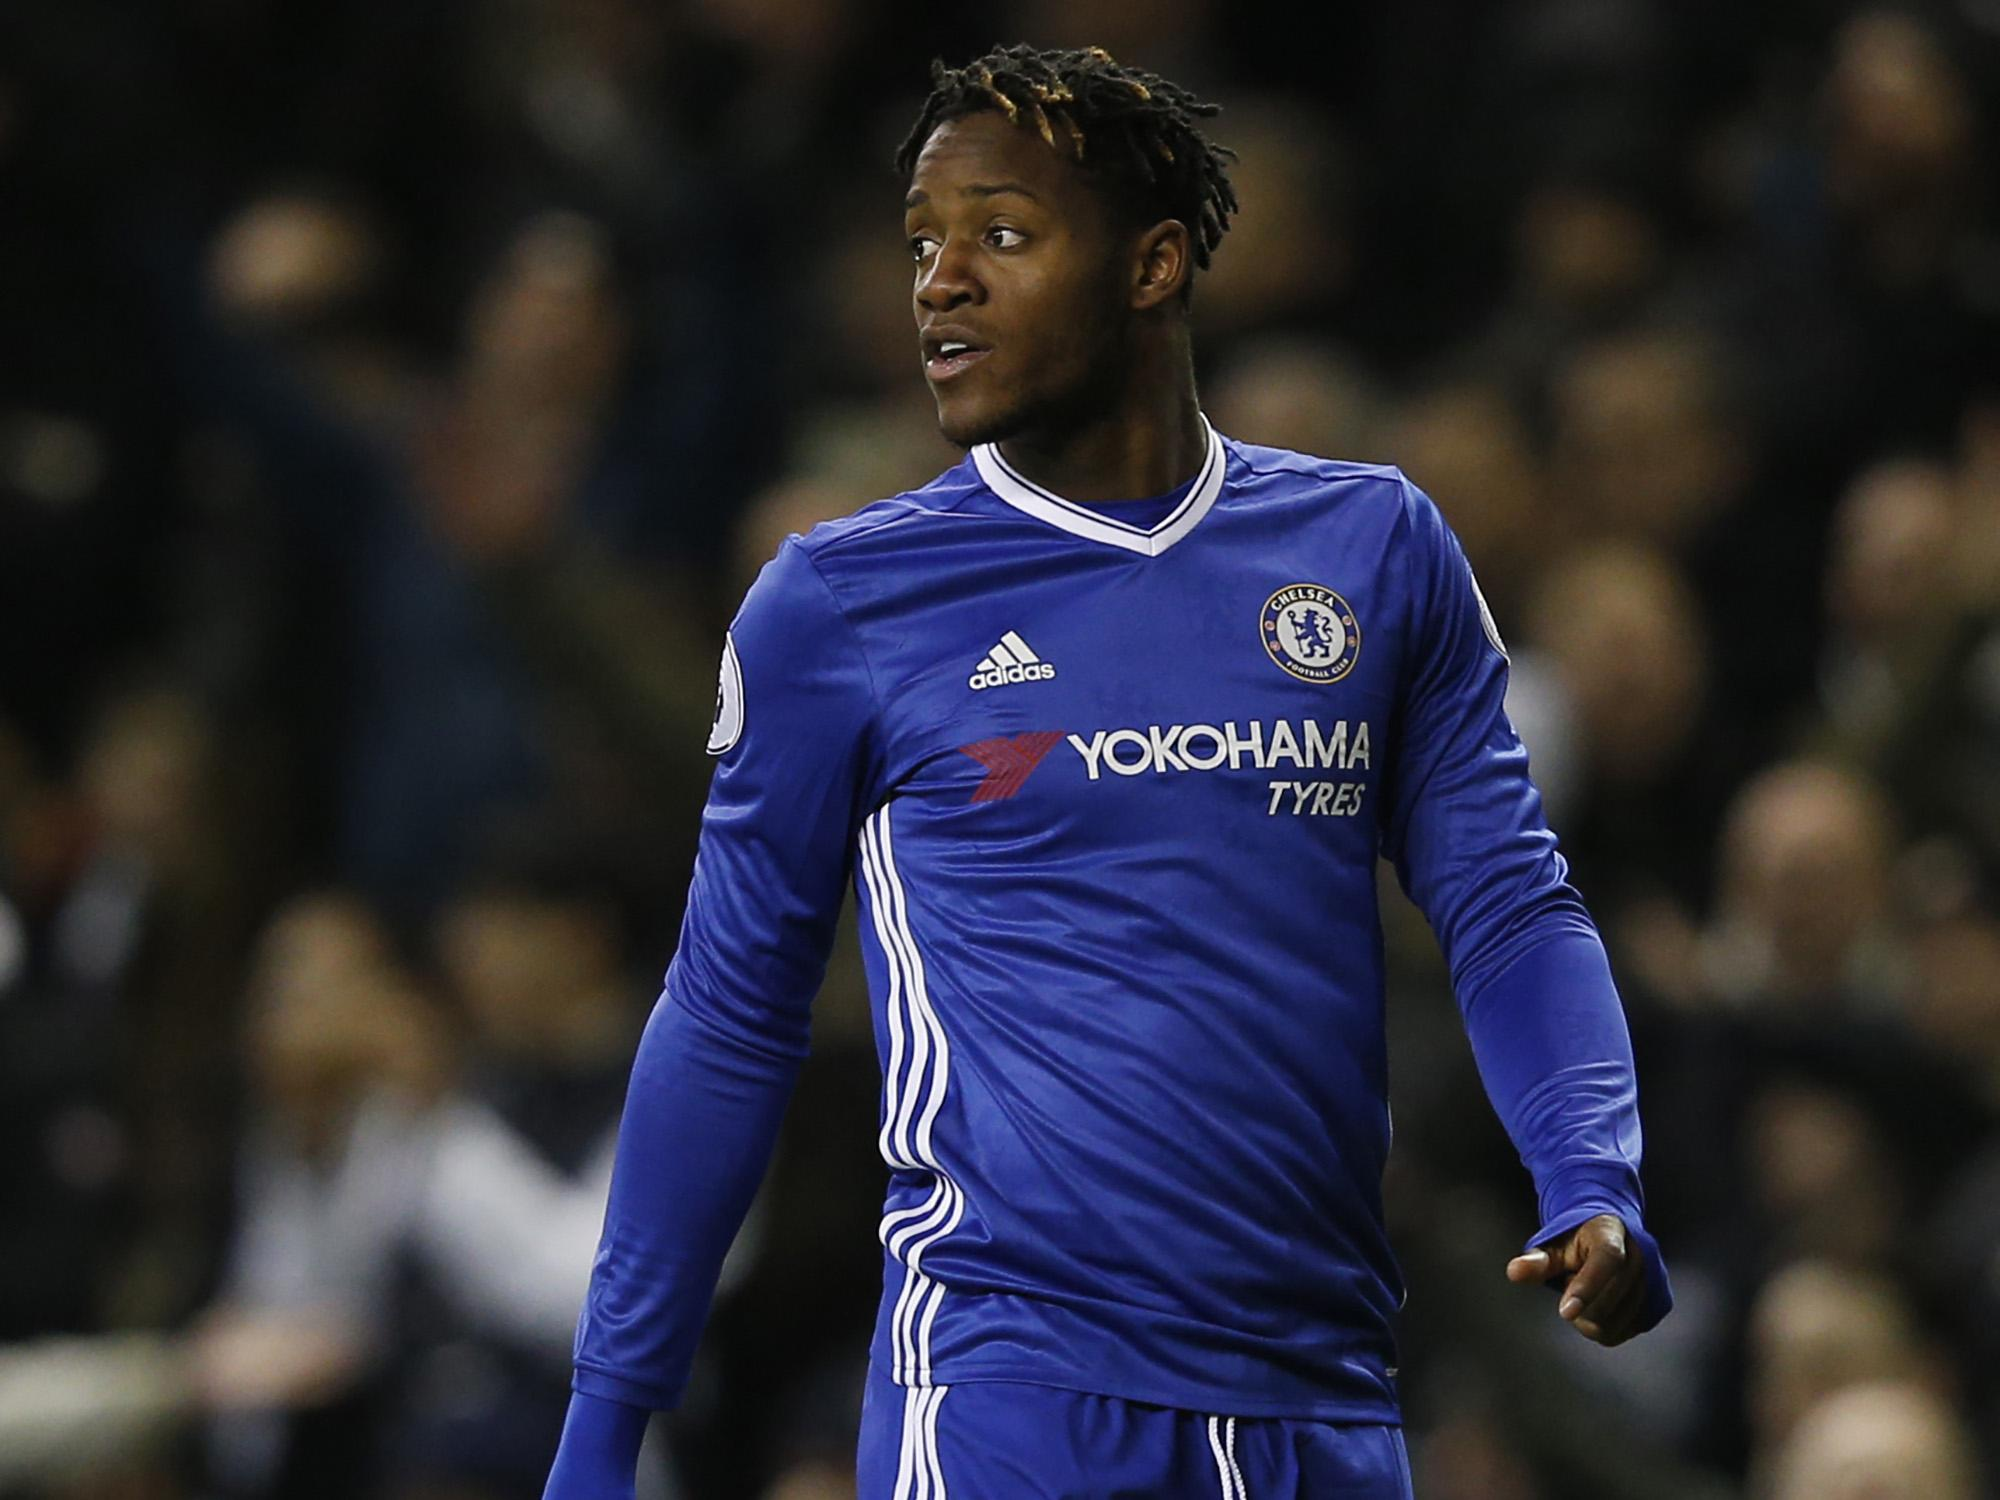 Michy Batshuayi told he must show he deserves to play for